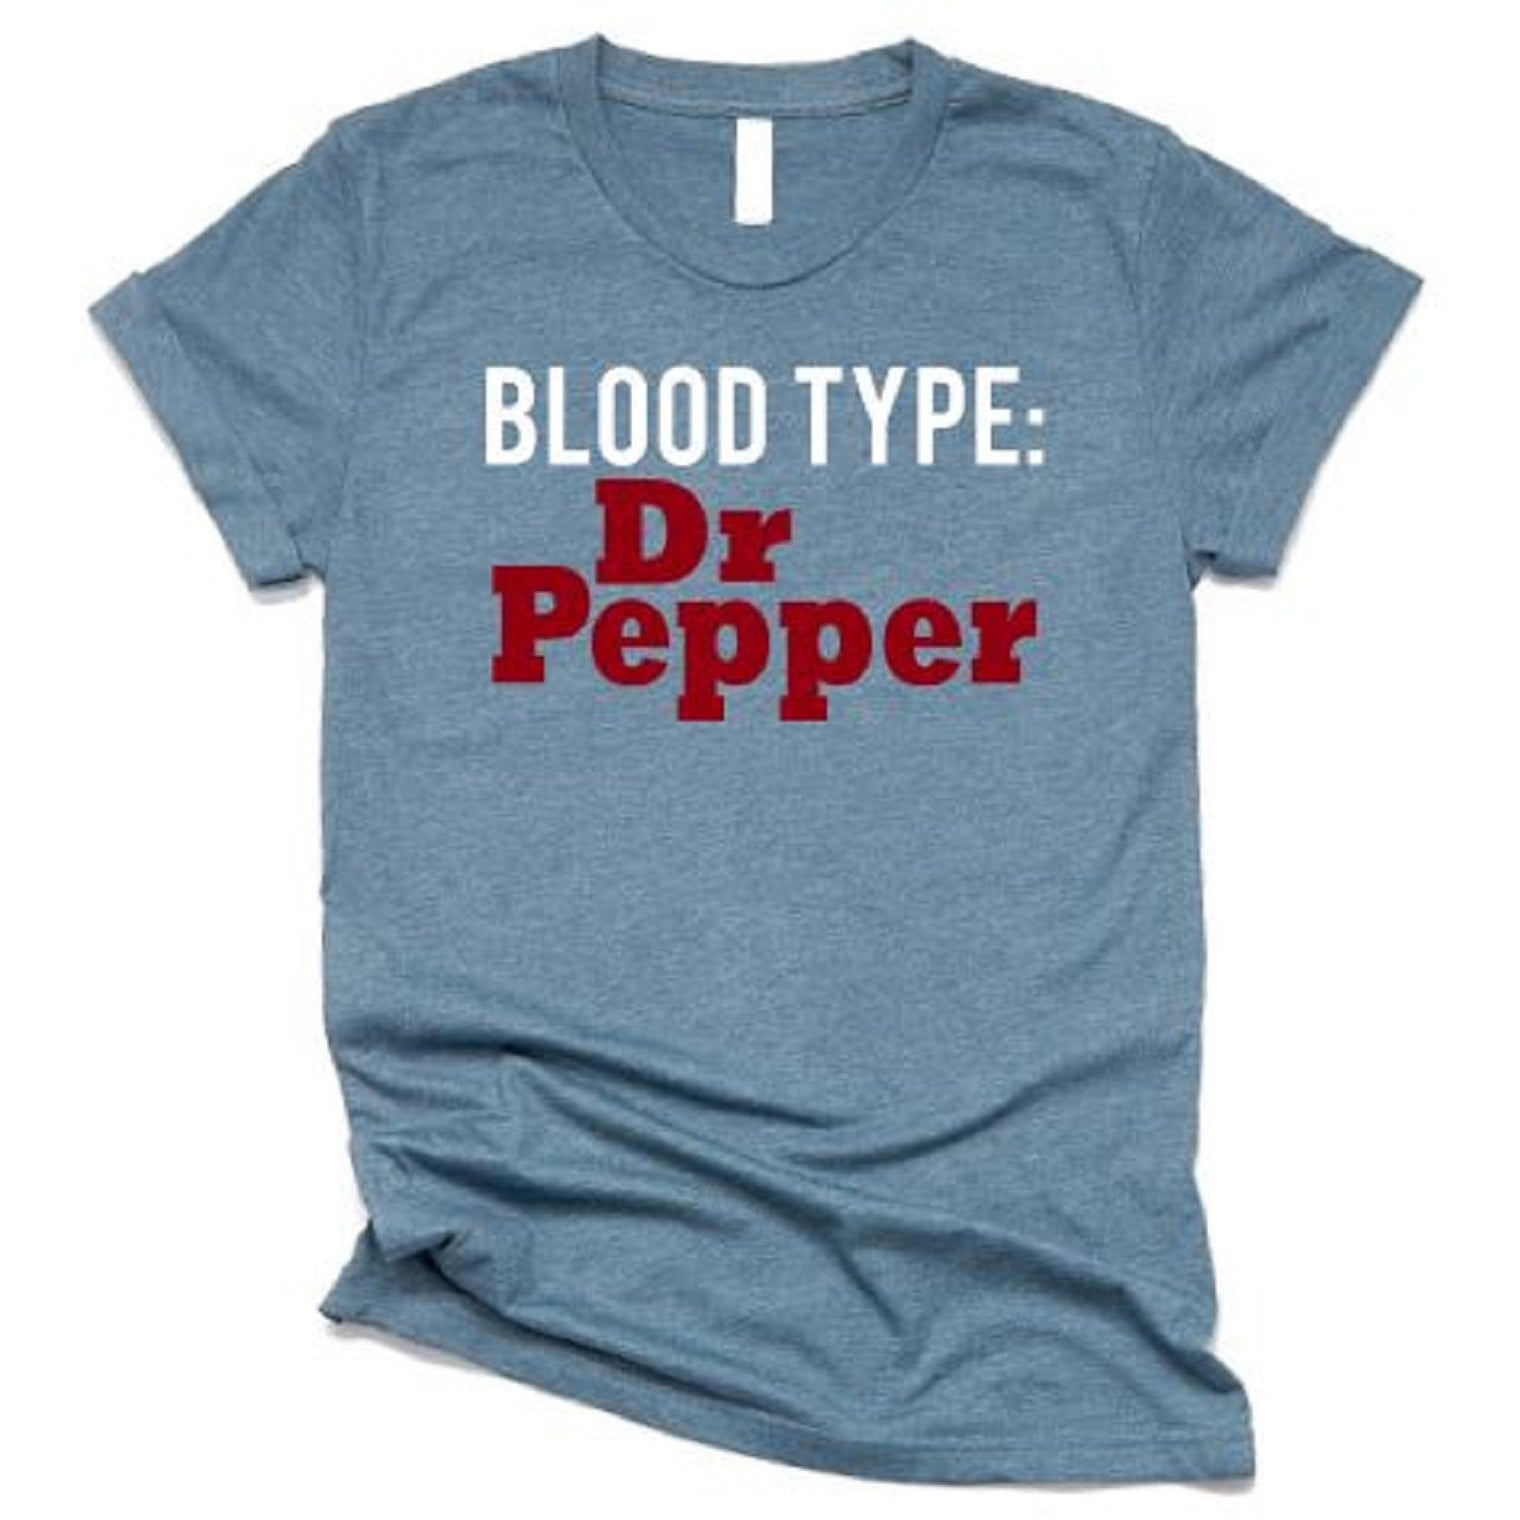 Blood Type Dr Pepper - ABadInfluence